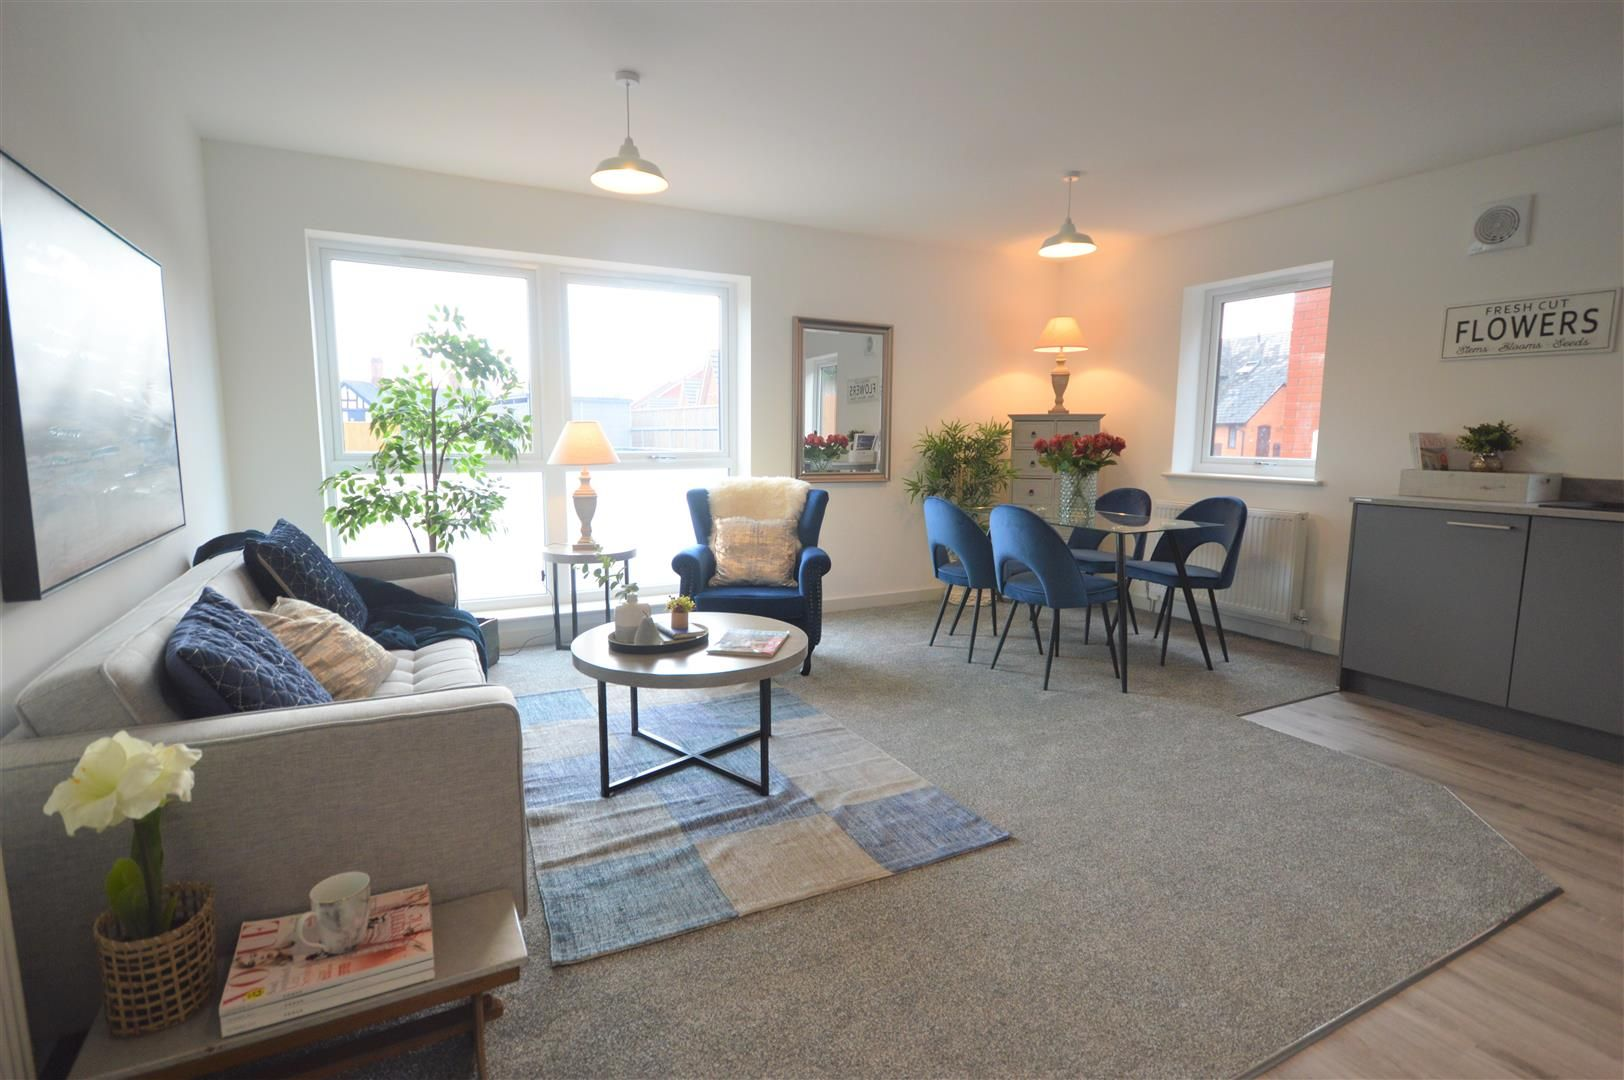 2 bed house for sale in Leominster 8